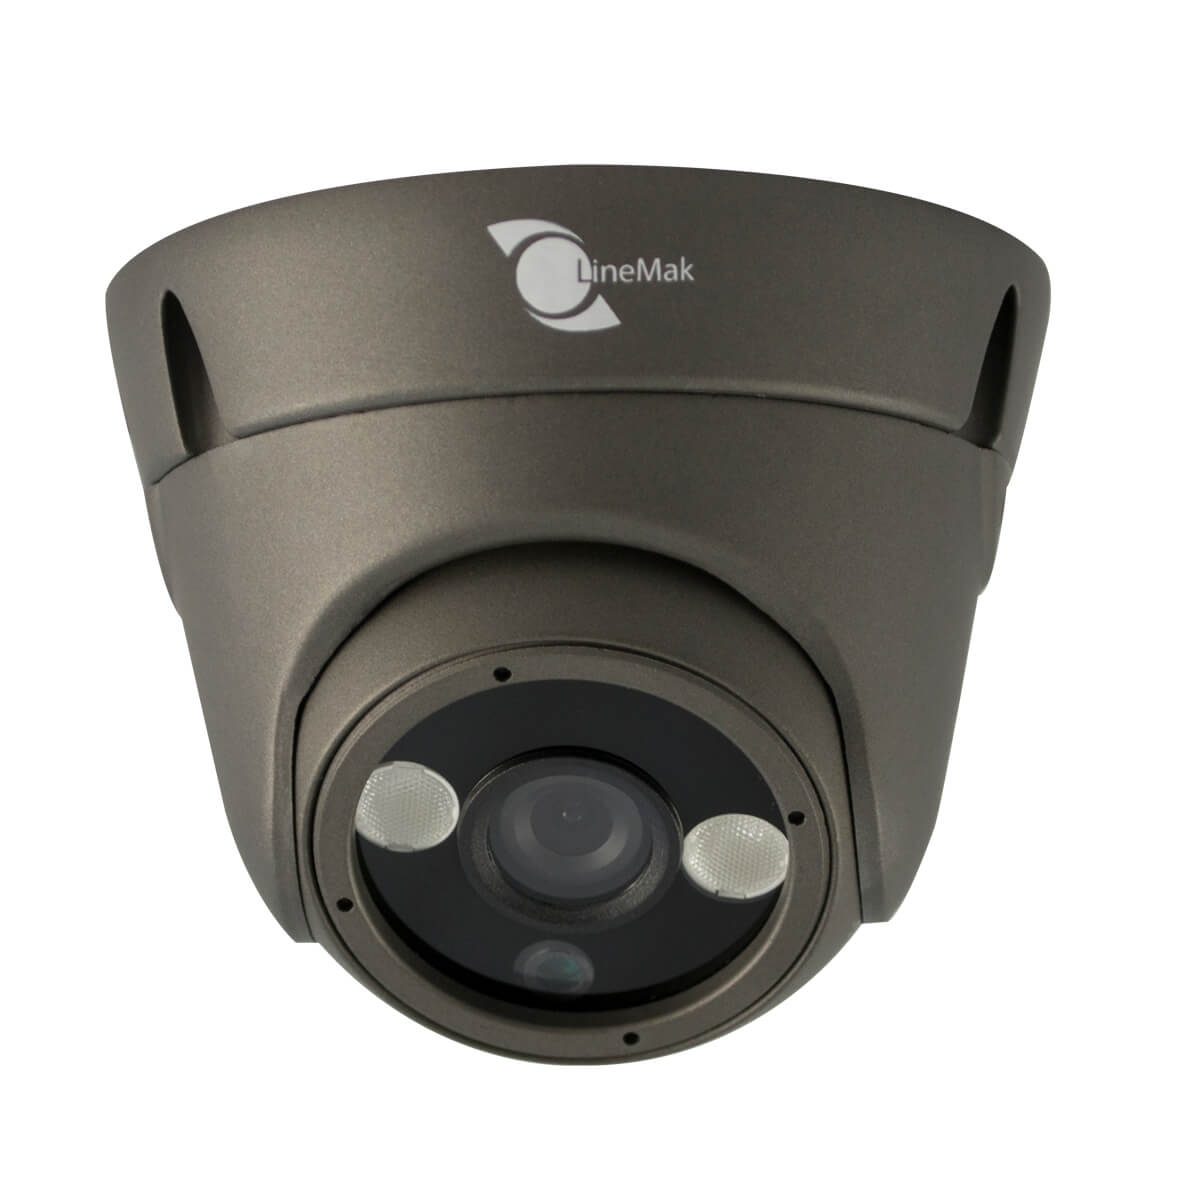 Camara tipo domo, HD Digital 1/3, 800TVL, 2 LED Array, 25m~30m IR